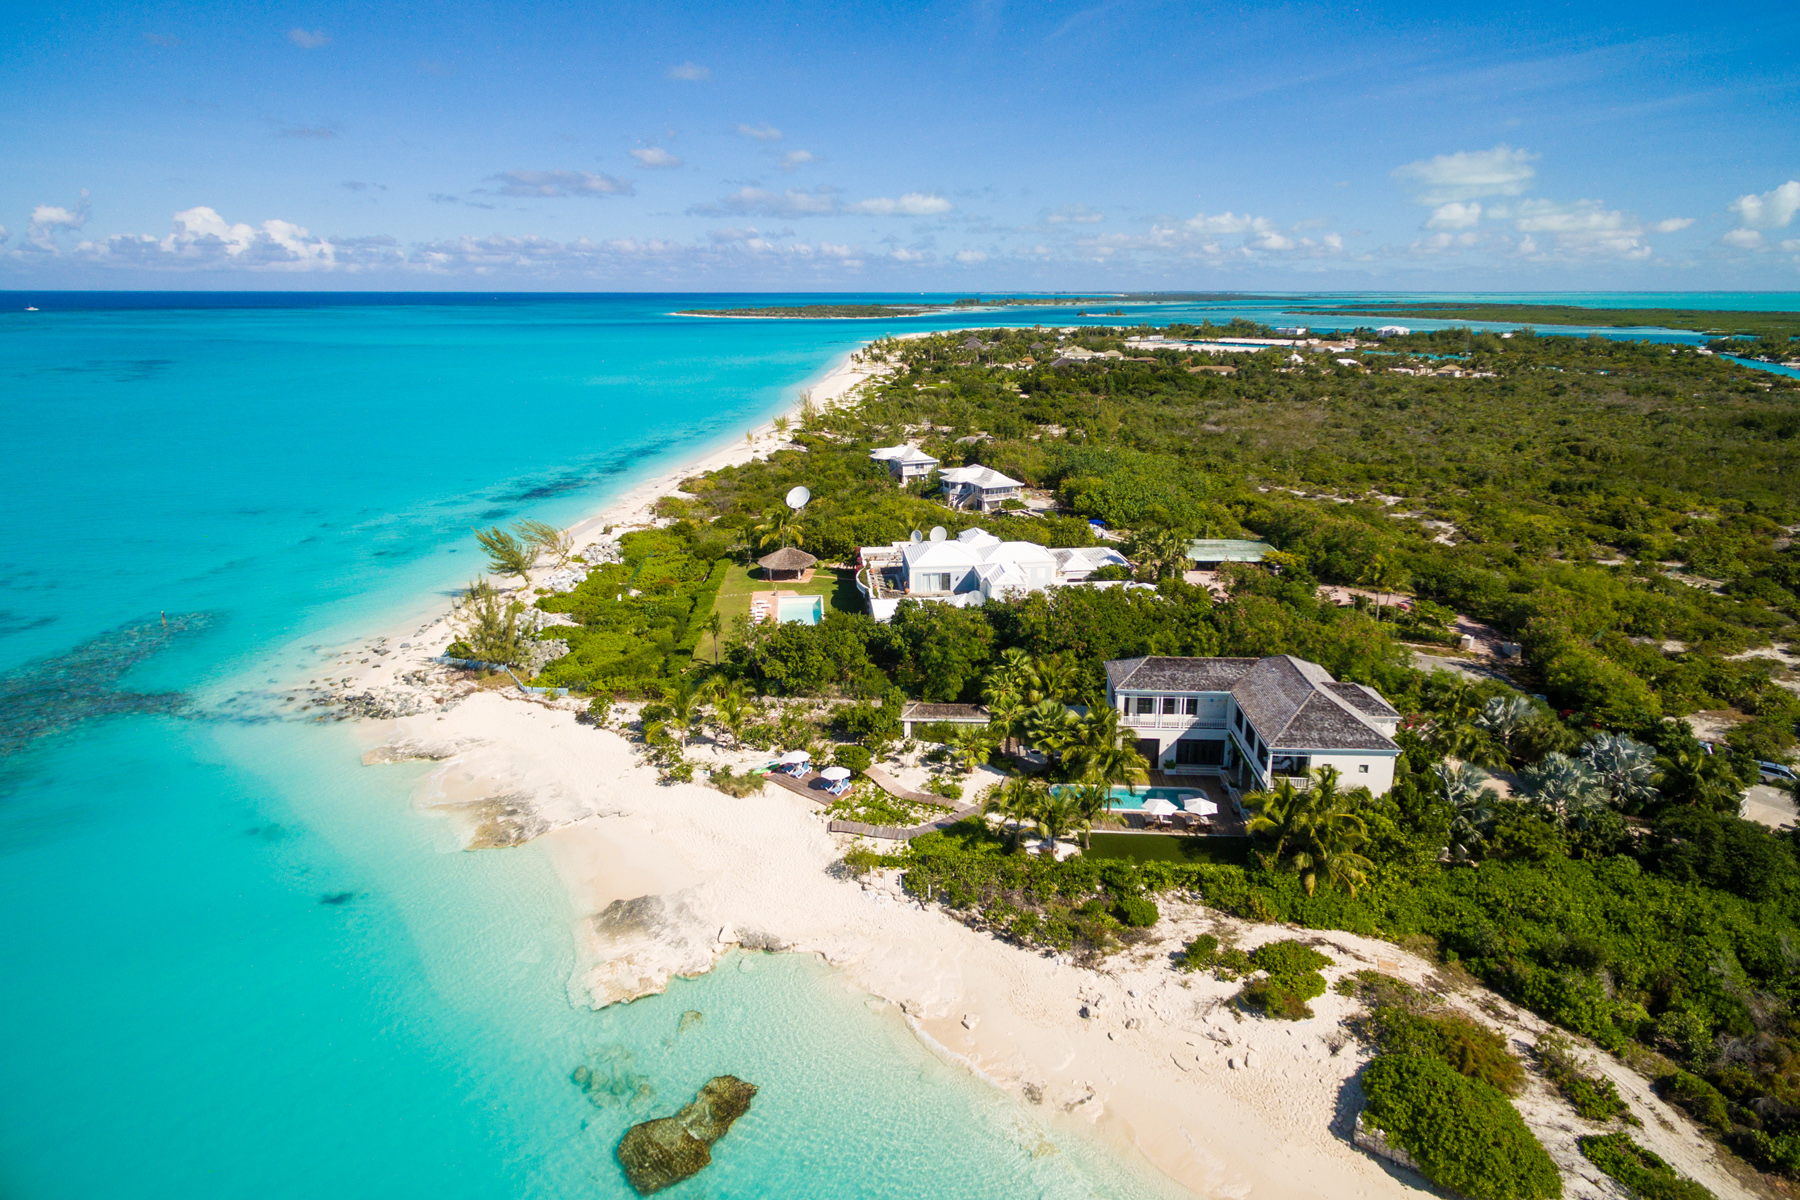 Single Family Home for Sale at Saving Grace - Luxurious Beachfront Villa Grace Bay, Providenciales TCI BWI Turks And Caicos Islands